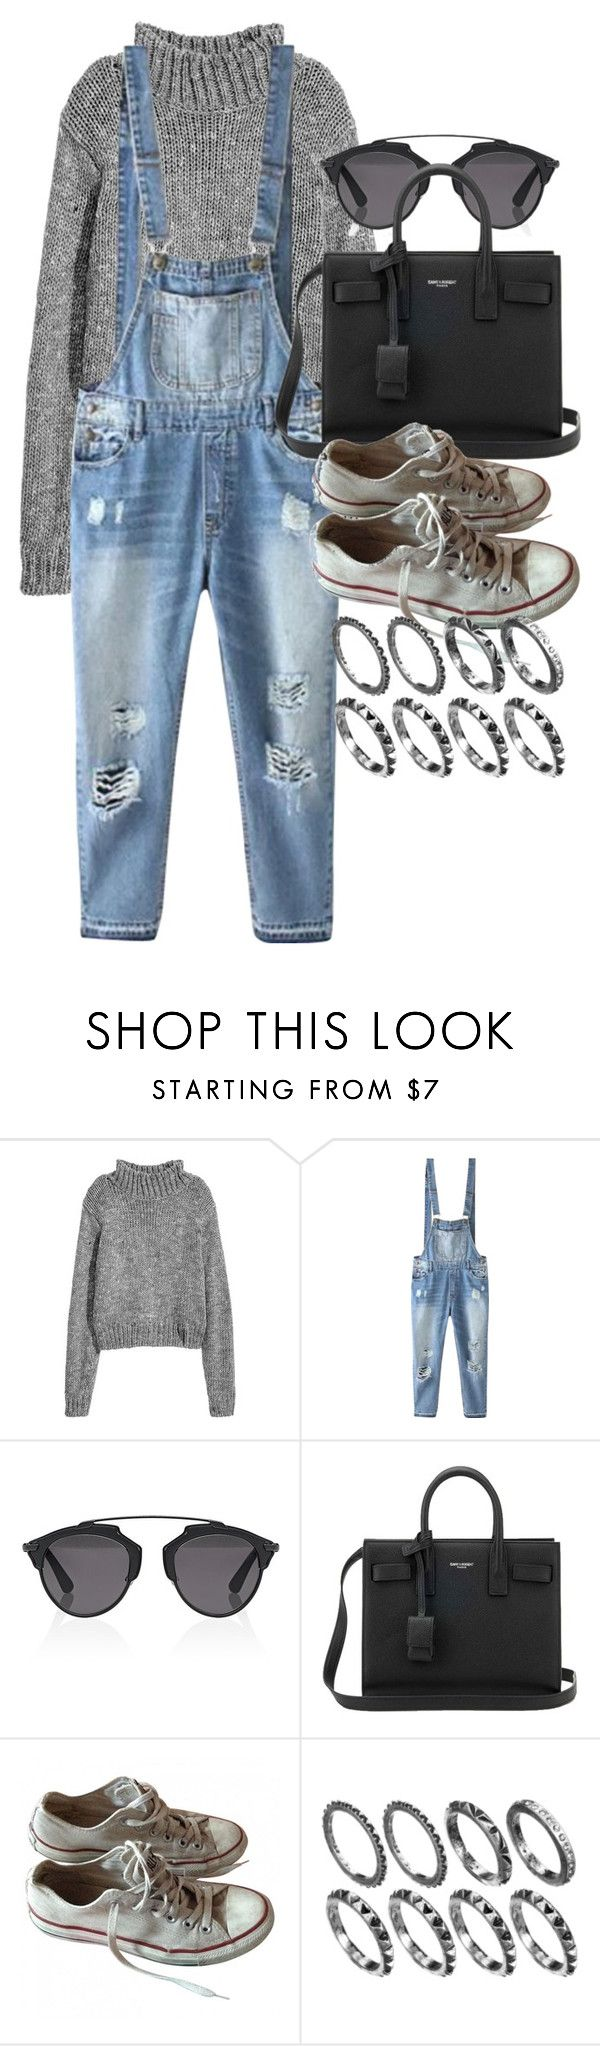 """""""Style #11342"""" by vany-alvarado ❤ liked on Polyvore featuring Relaxfeel, Christian Dior, Yves Saint Laurent and Converse"""